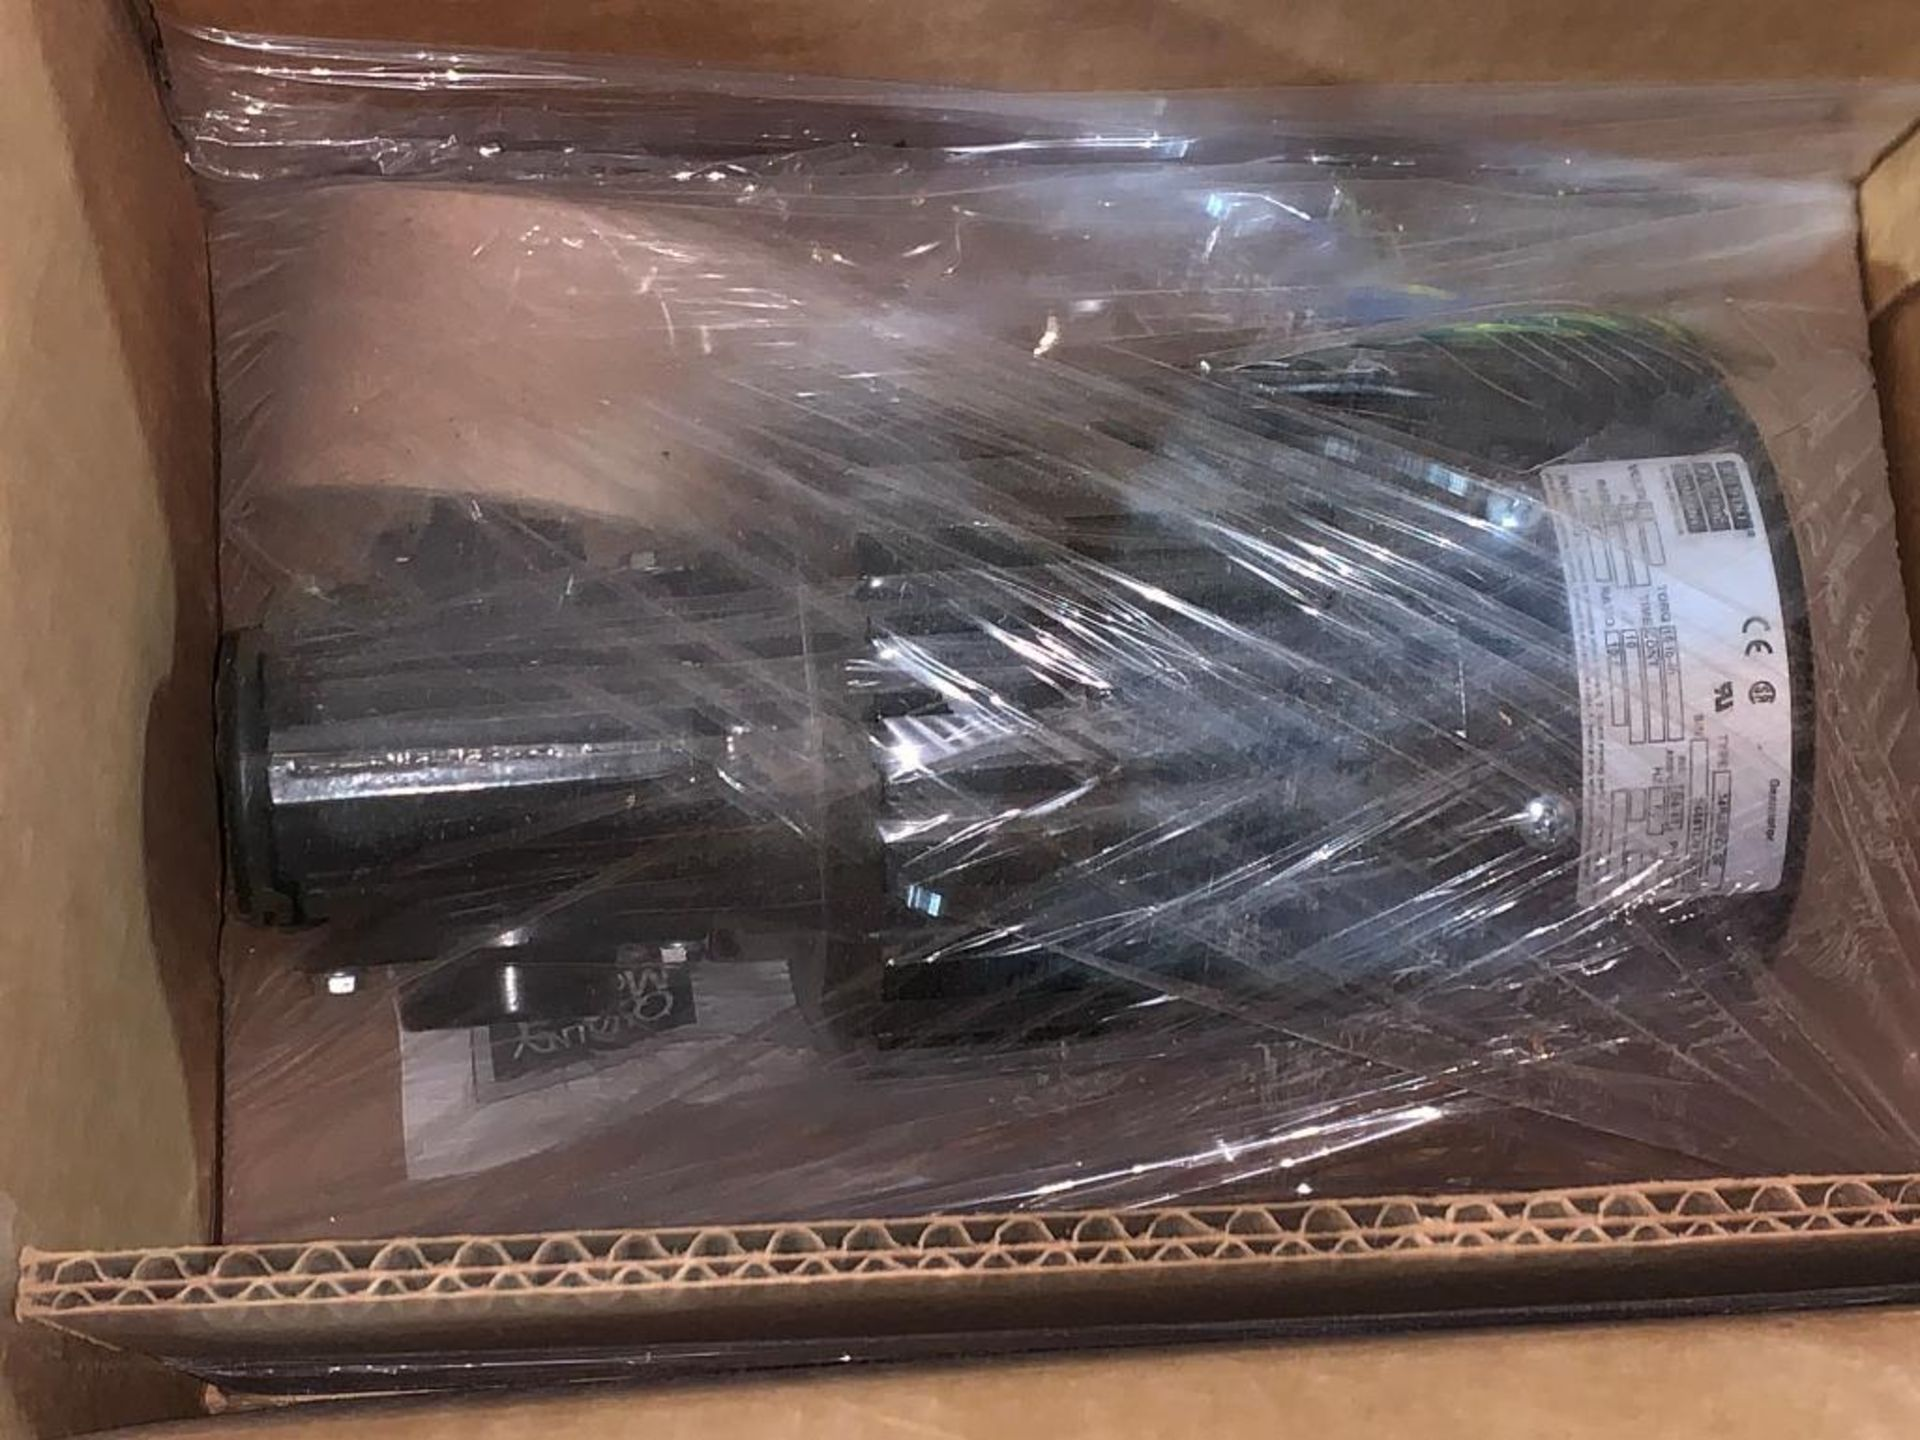 pallet of used motors and drives - Image 12 of 13